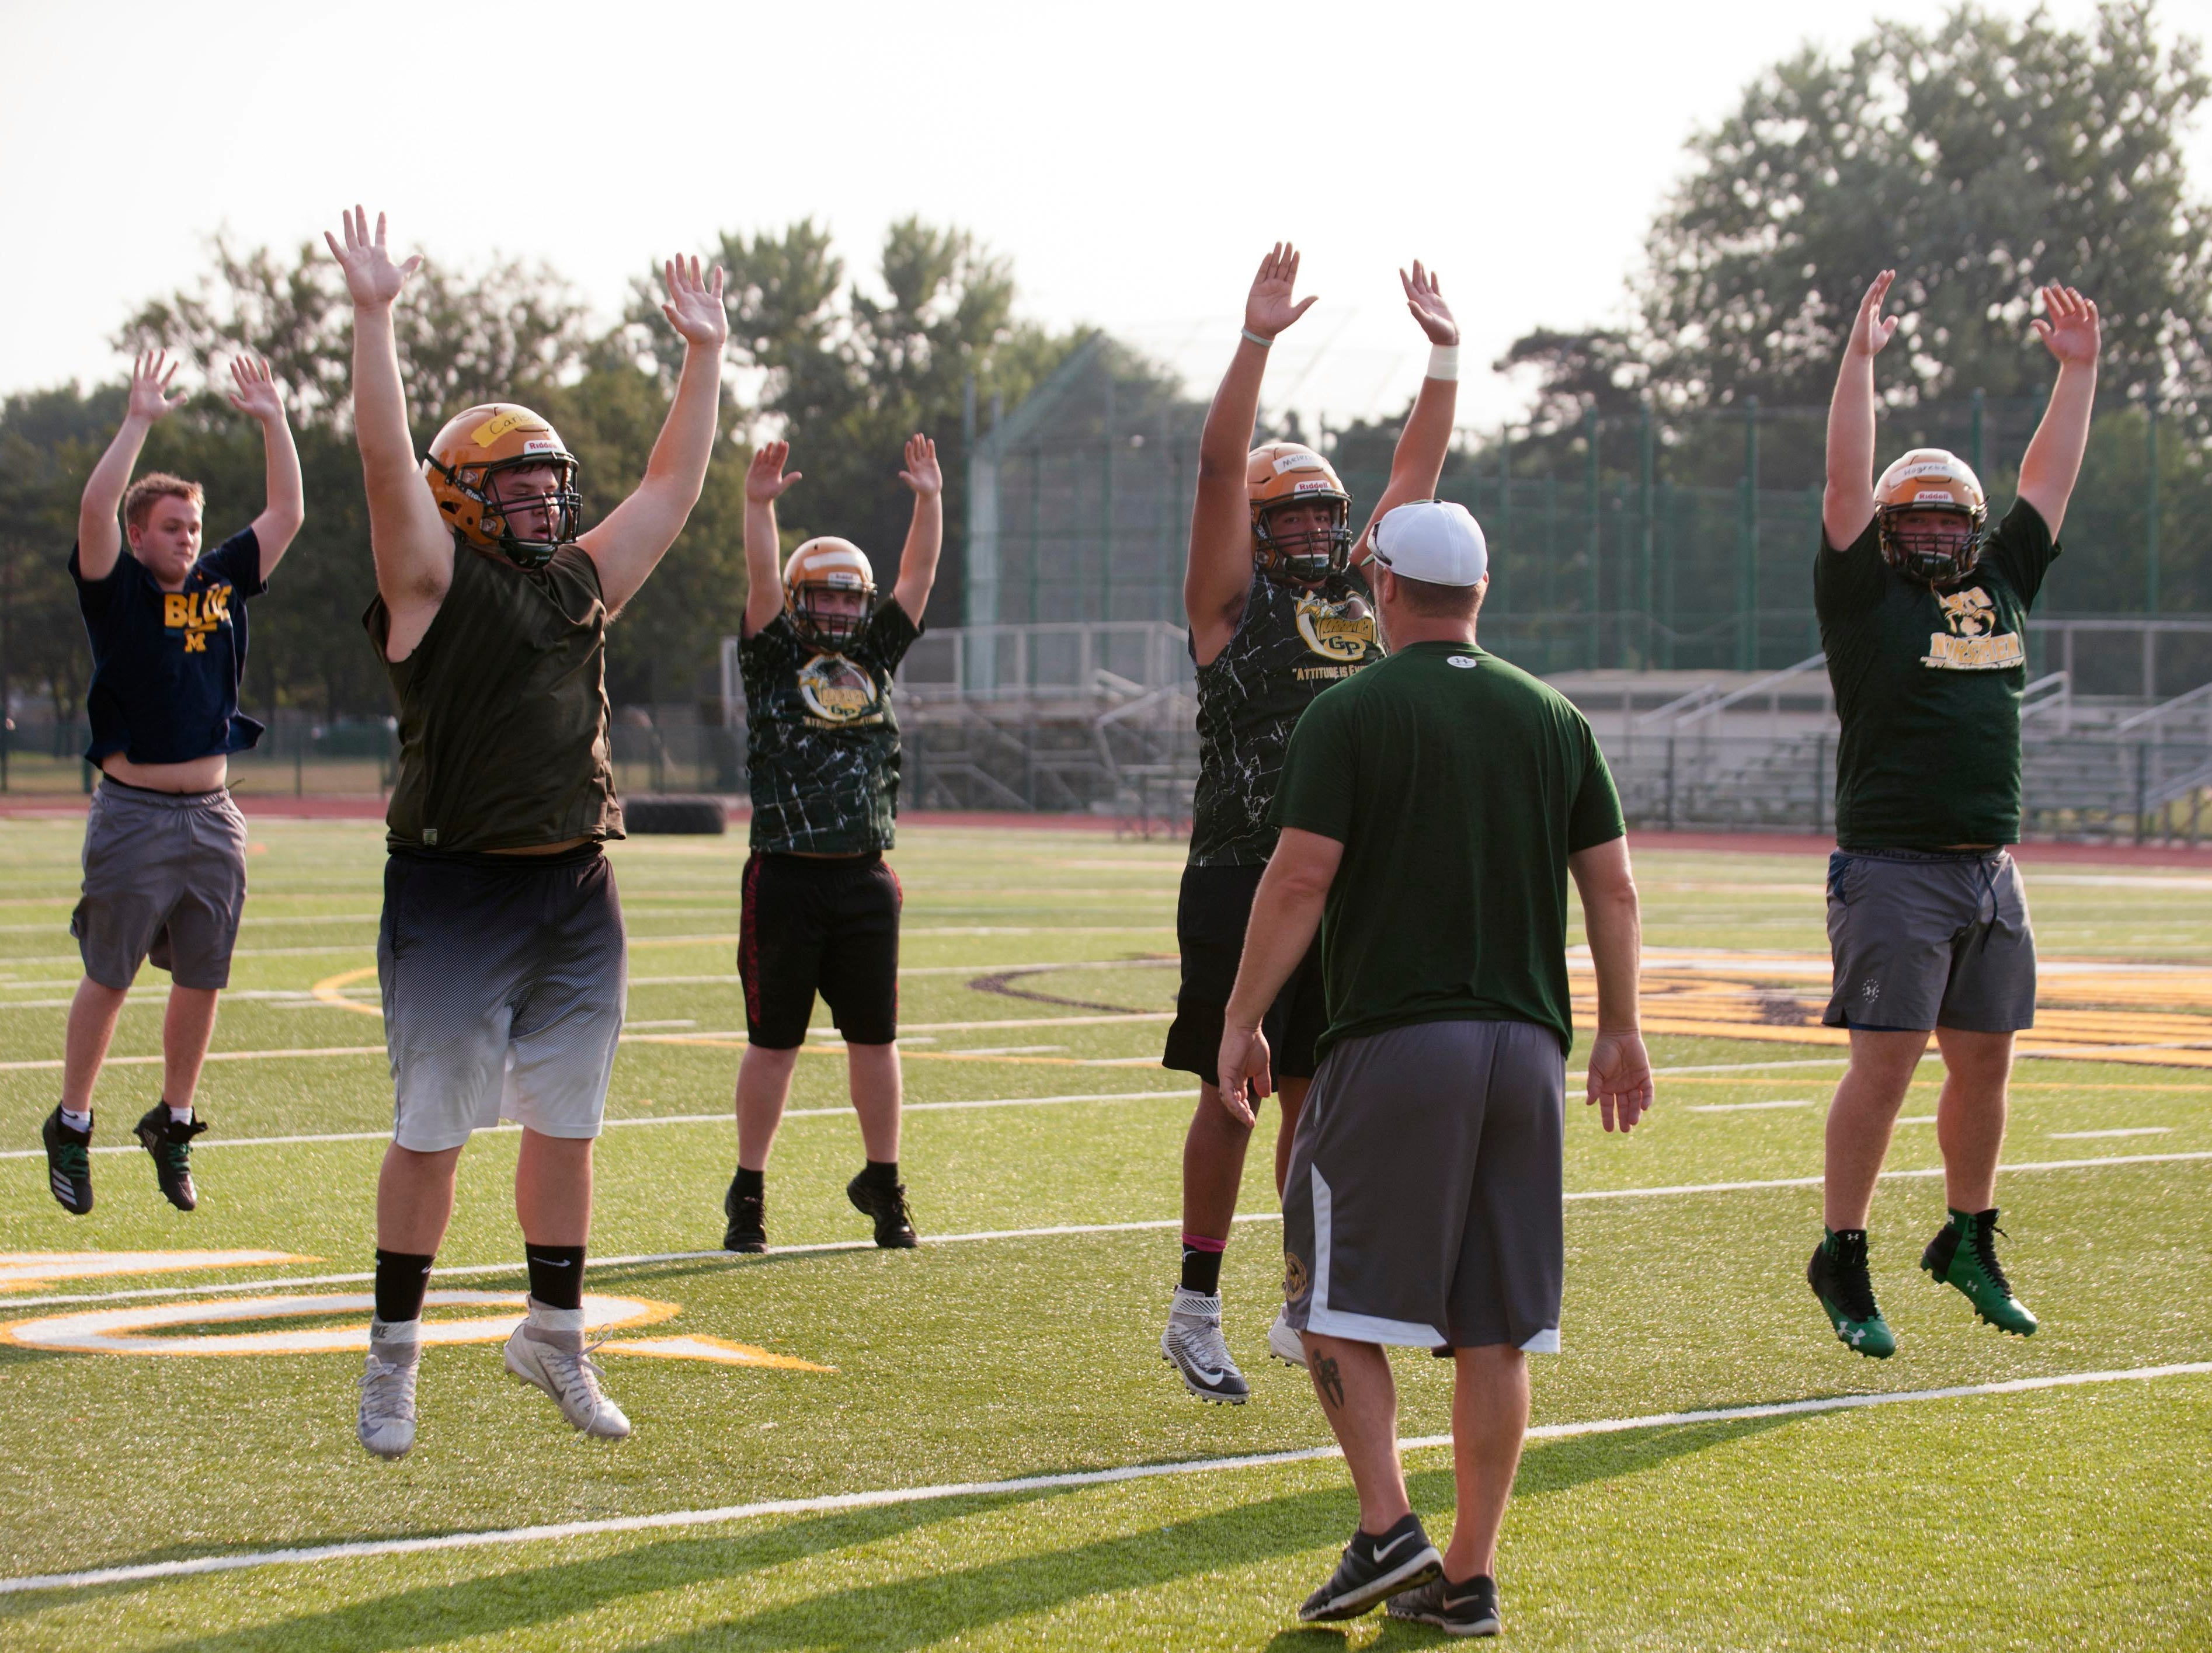 Grosse Pointe North head coach Joe Drouin has the linemen jumping early during the first practice of the season.